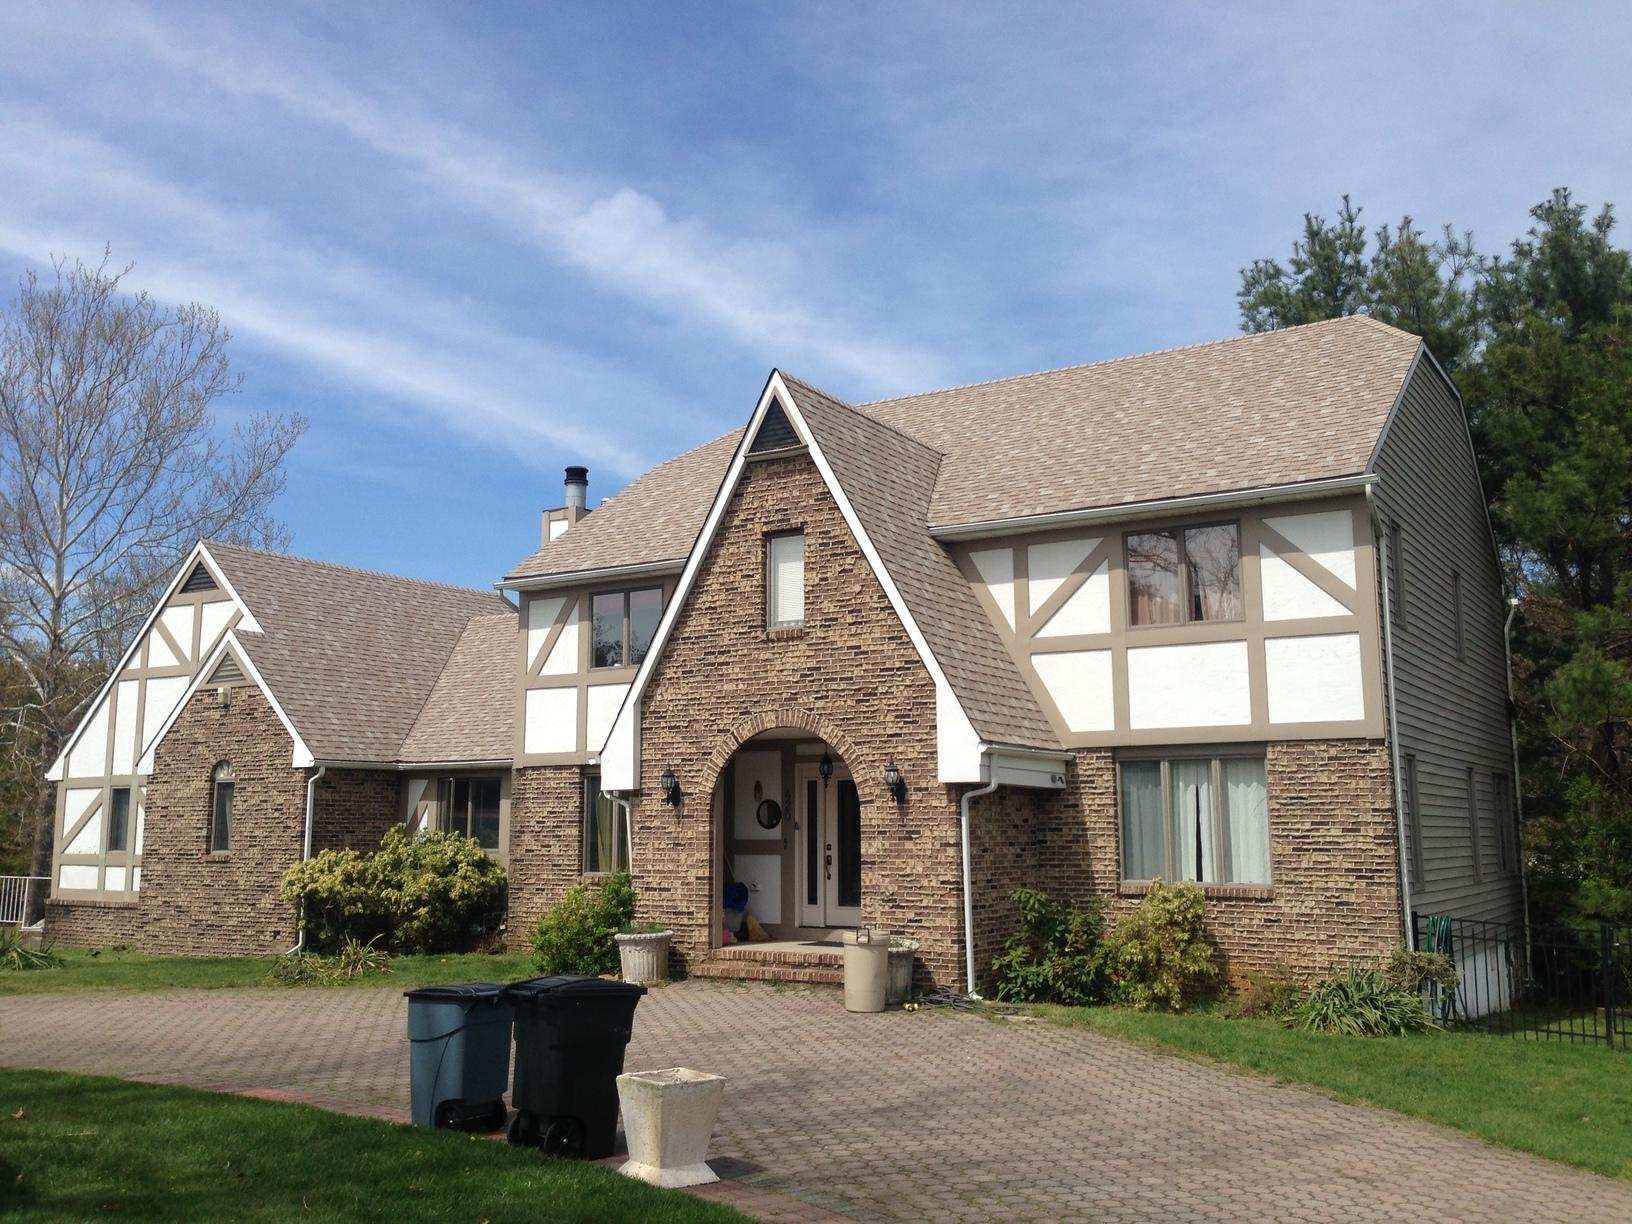 Freehold NJ Roof Replacement Amber Color Roof - After Photo